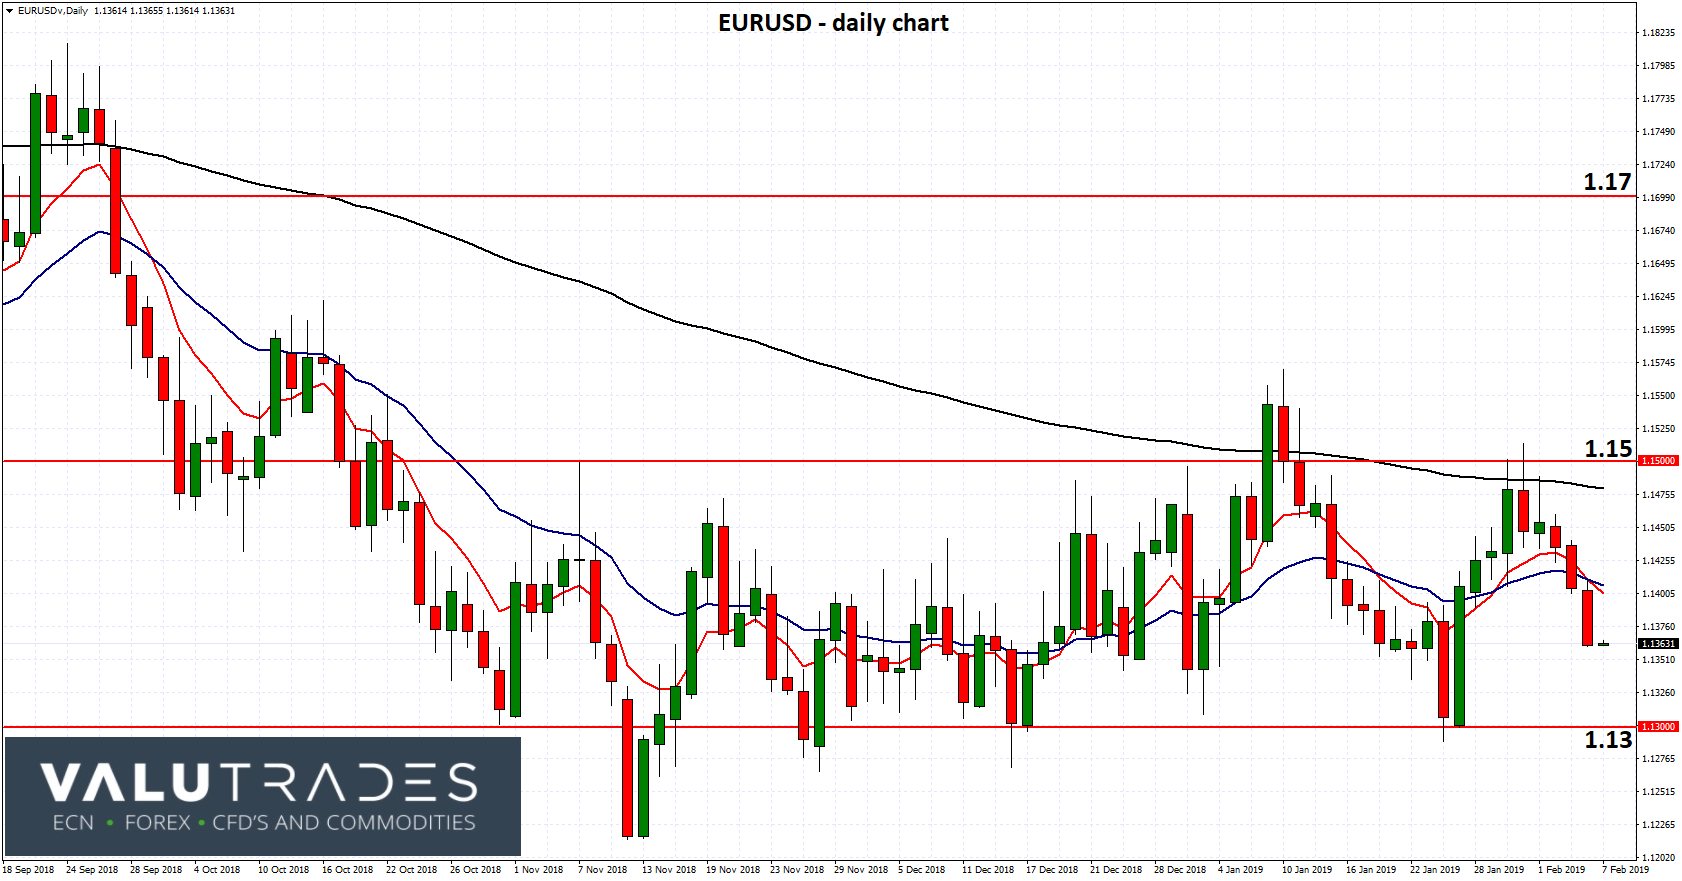 EURUSD - Looking for Support From 1.13 as ECB Hamstrung by Draghi Departure